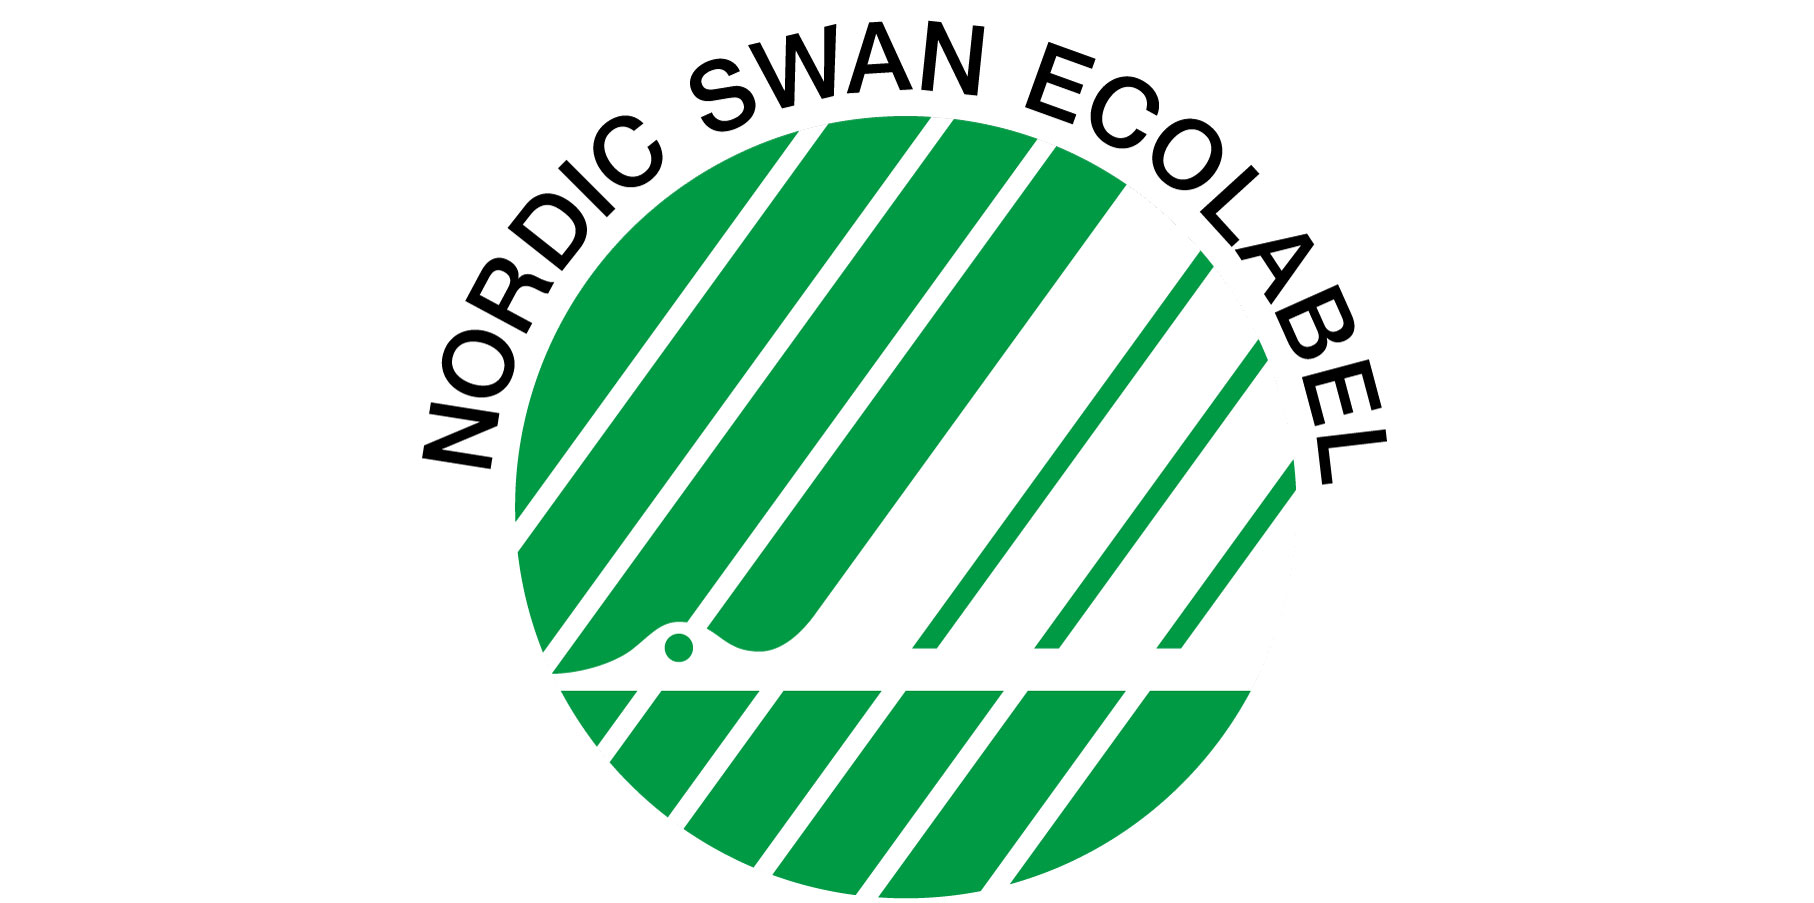 re-nordic-swan-ecolabel.png